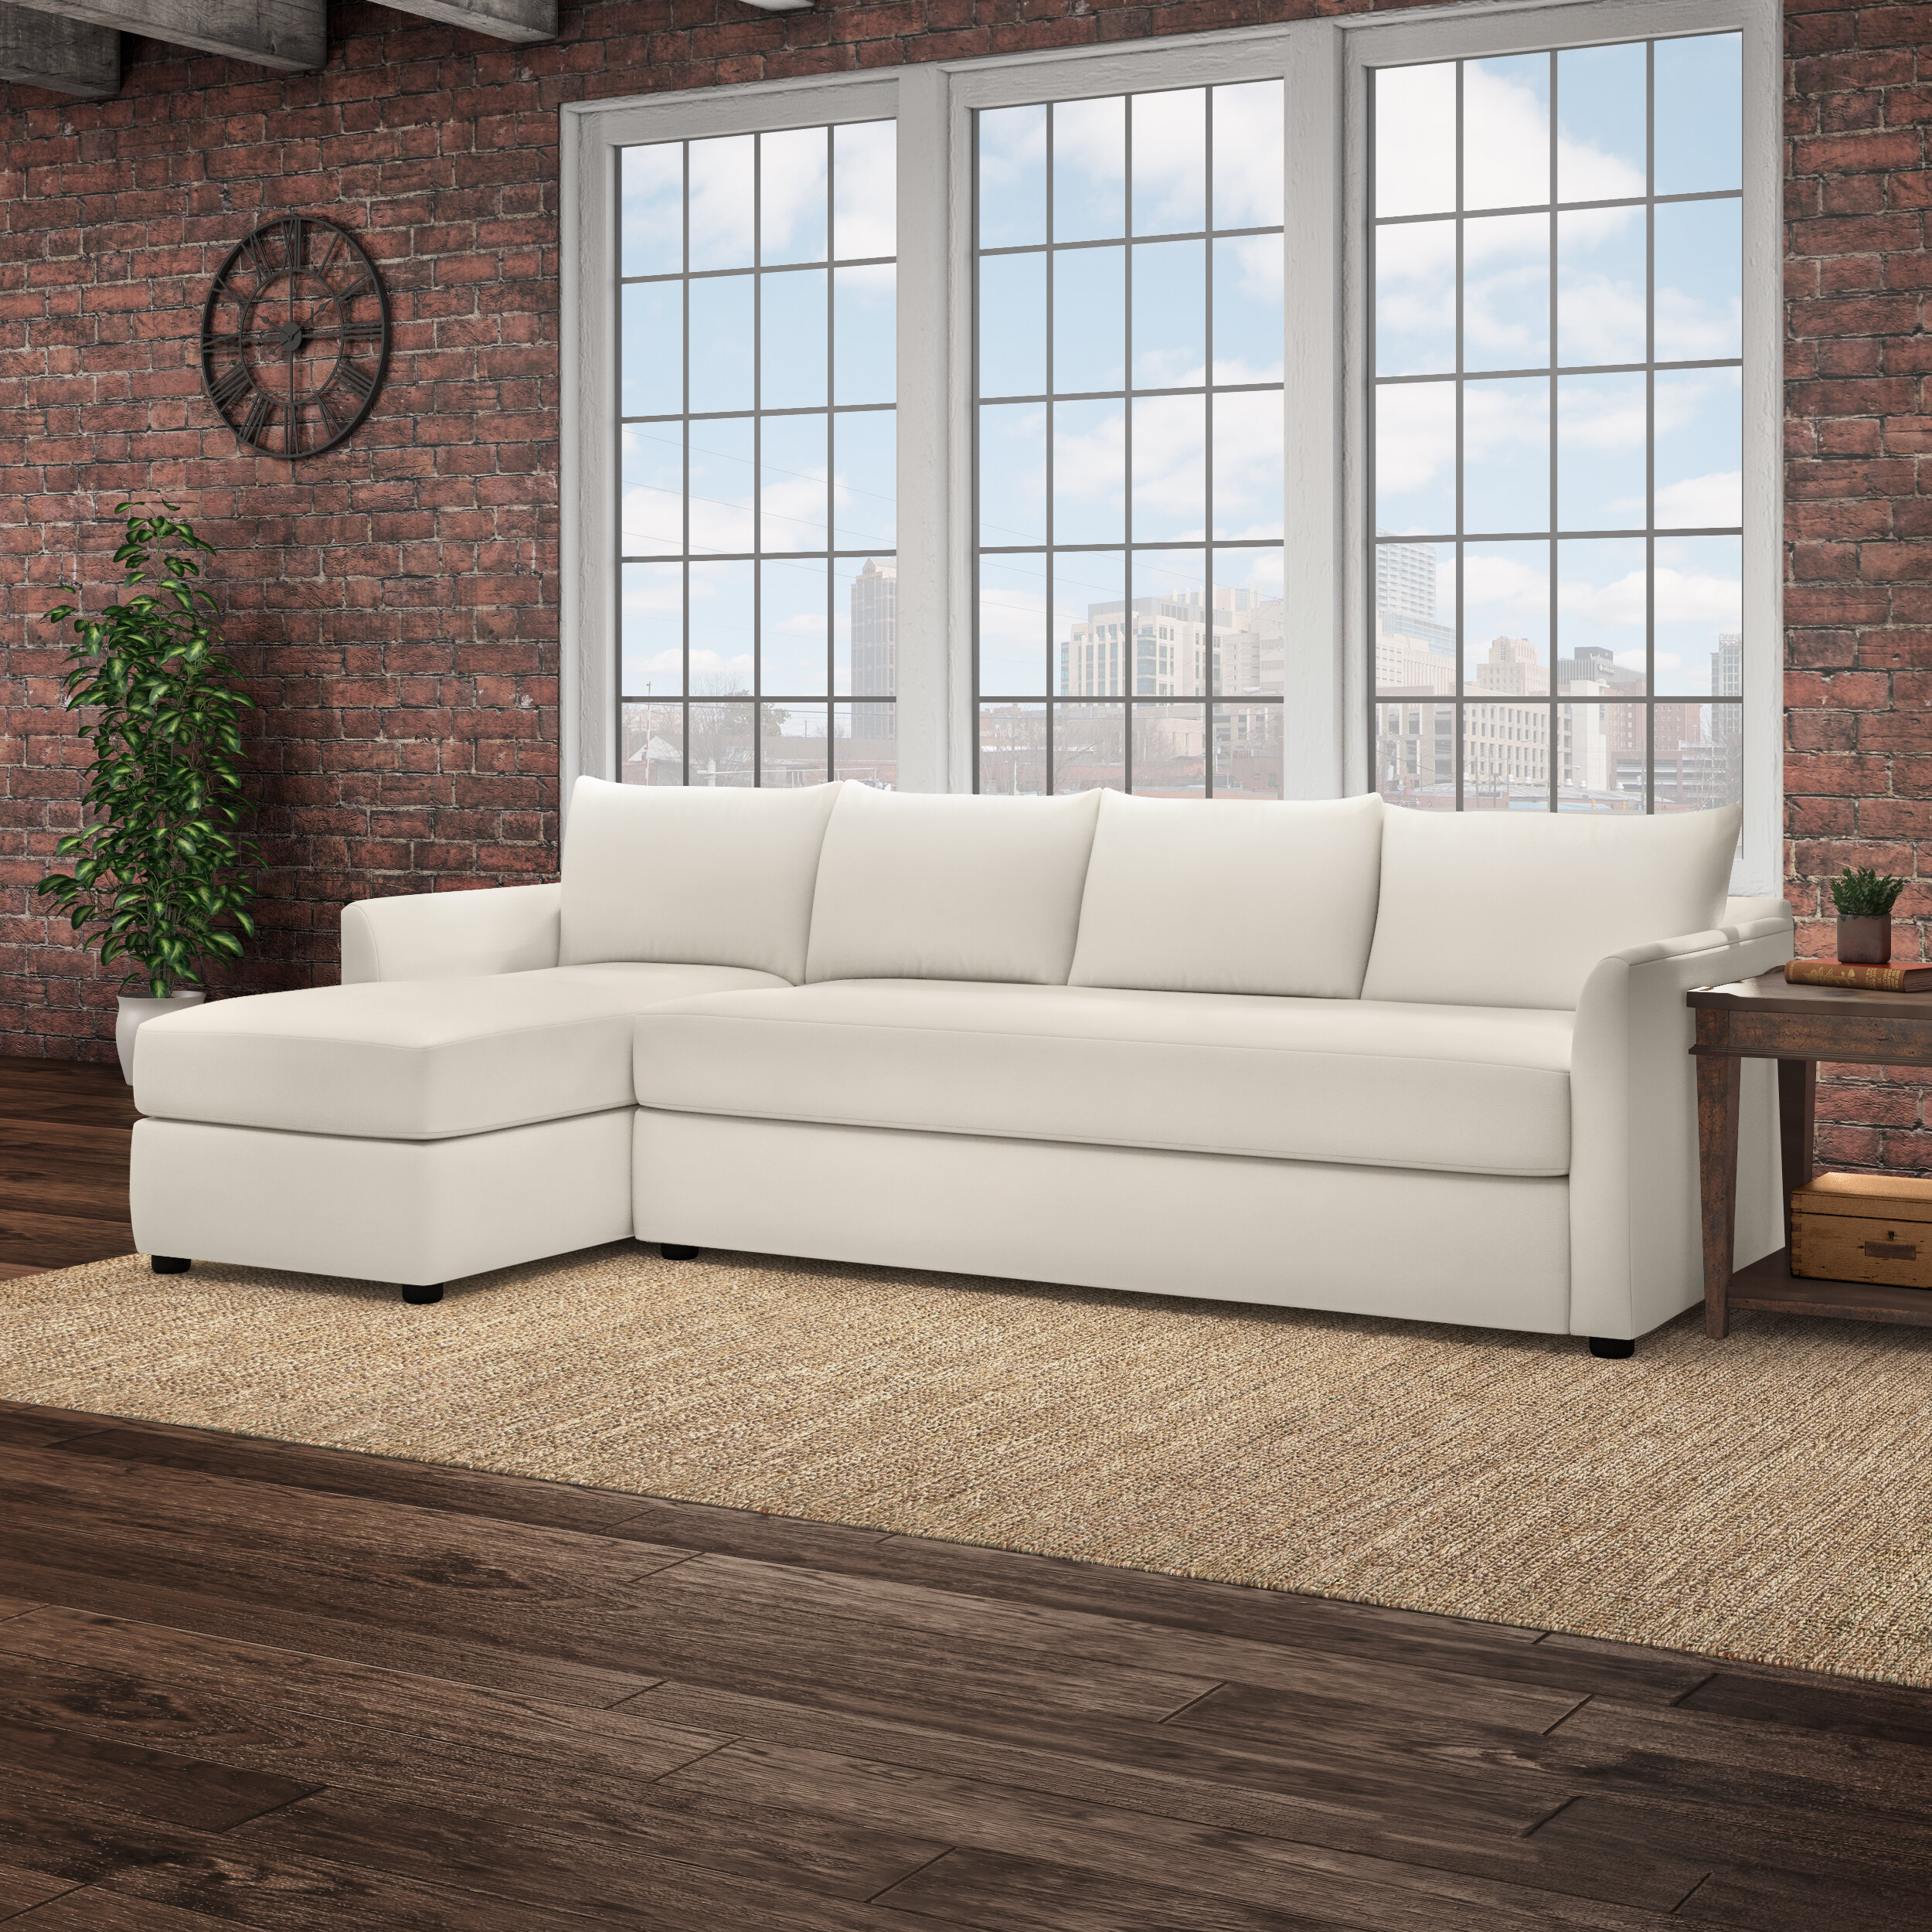 Stupendous Ayanna Sofa With Chaise Sectional Ibusinesslaw Wood Chair Design Ideas Ibusinesslaworg